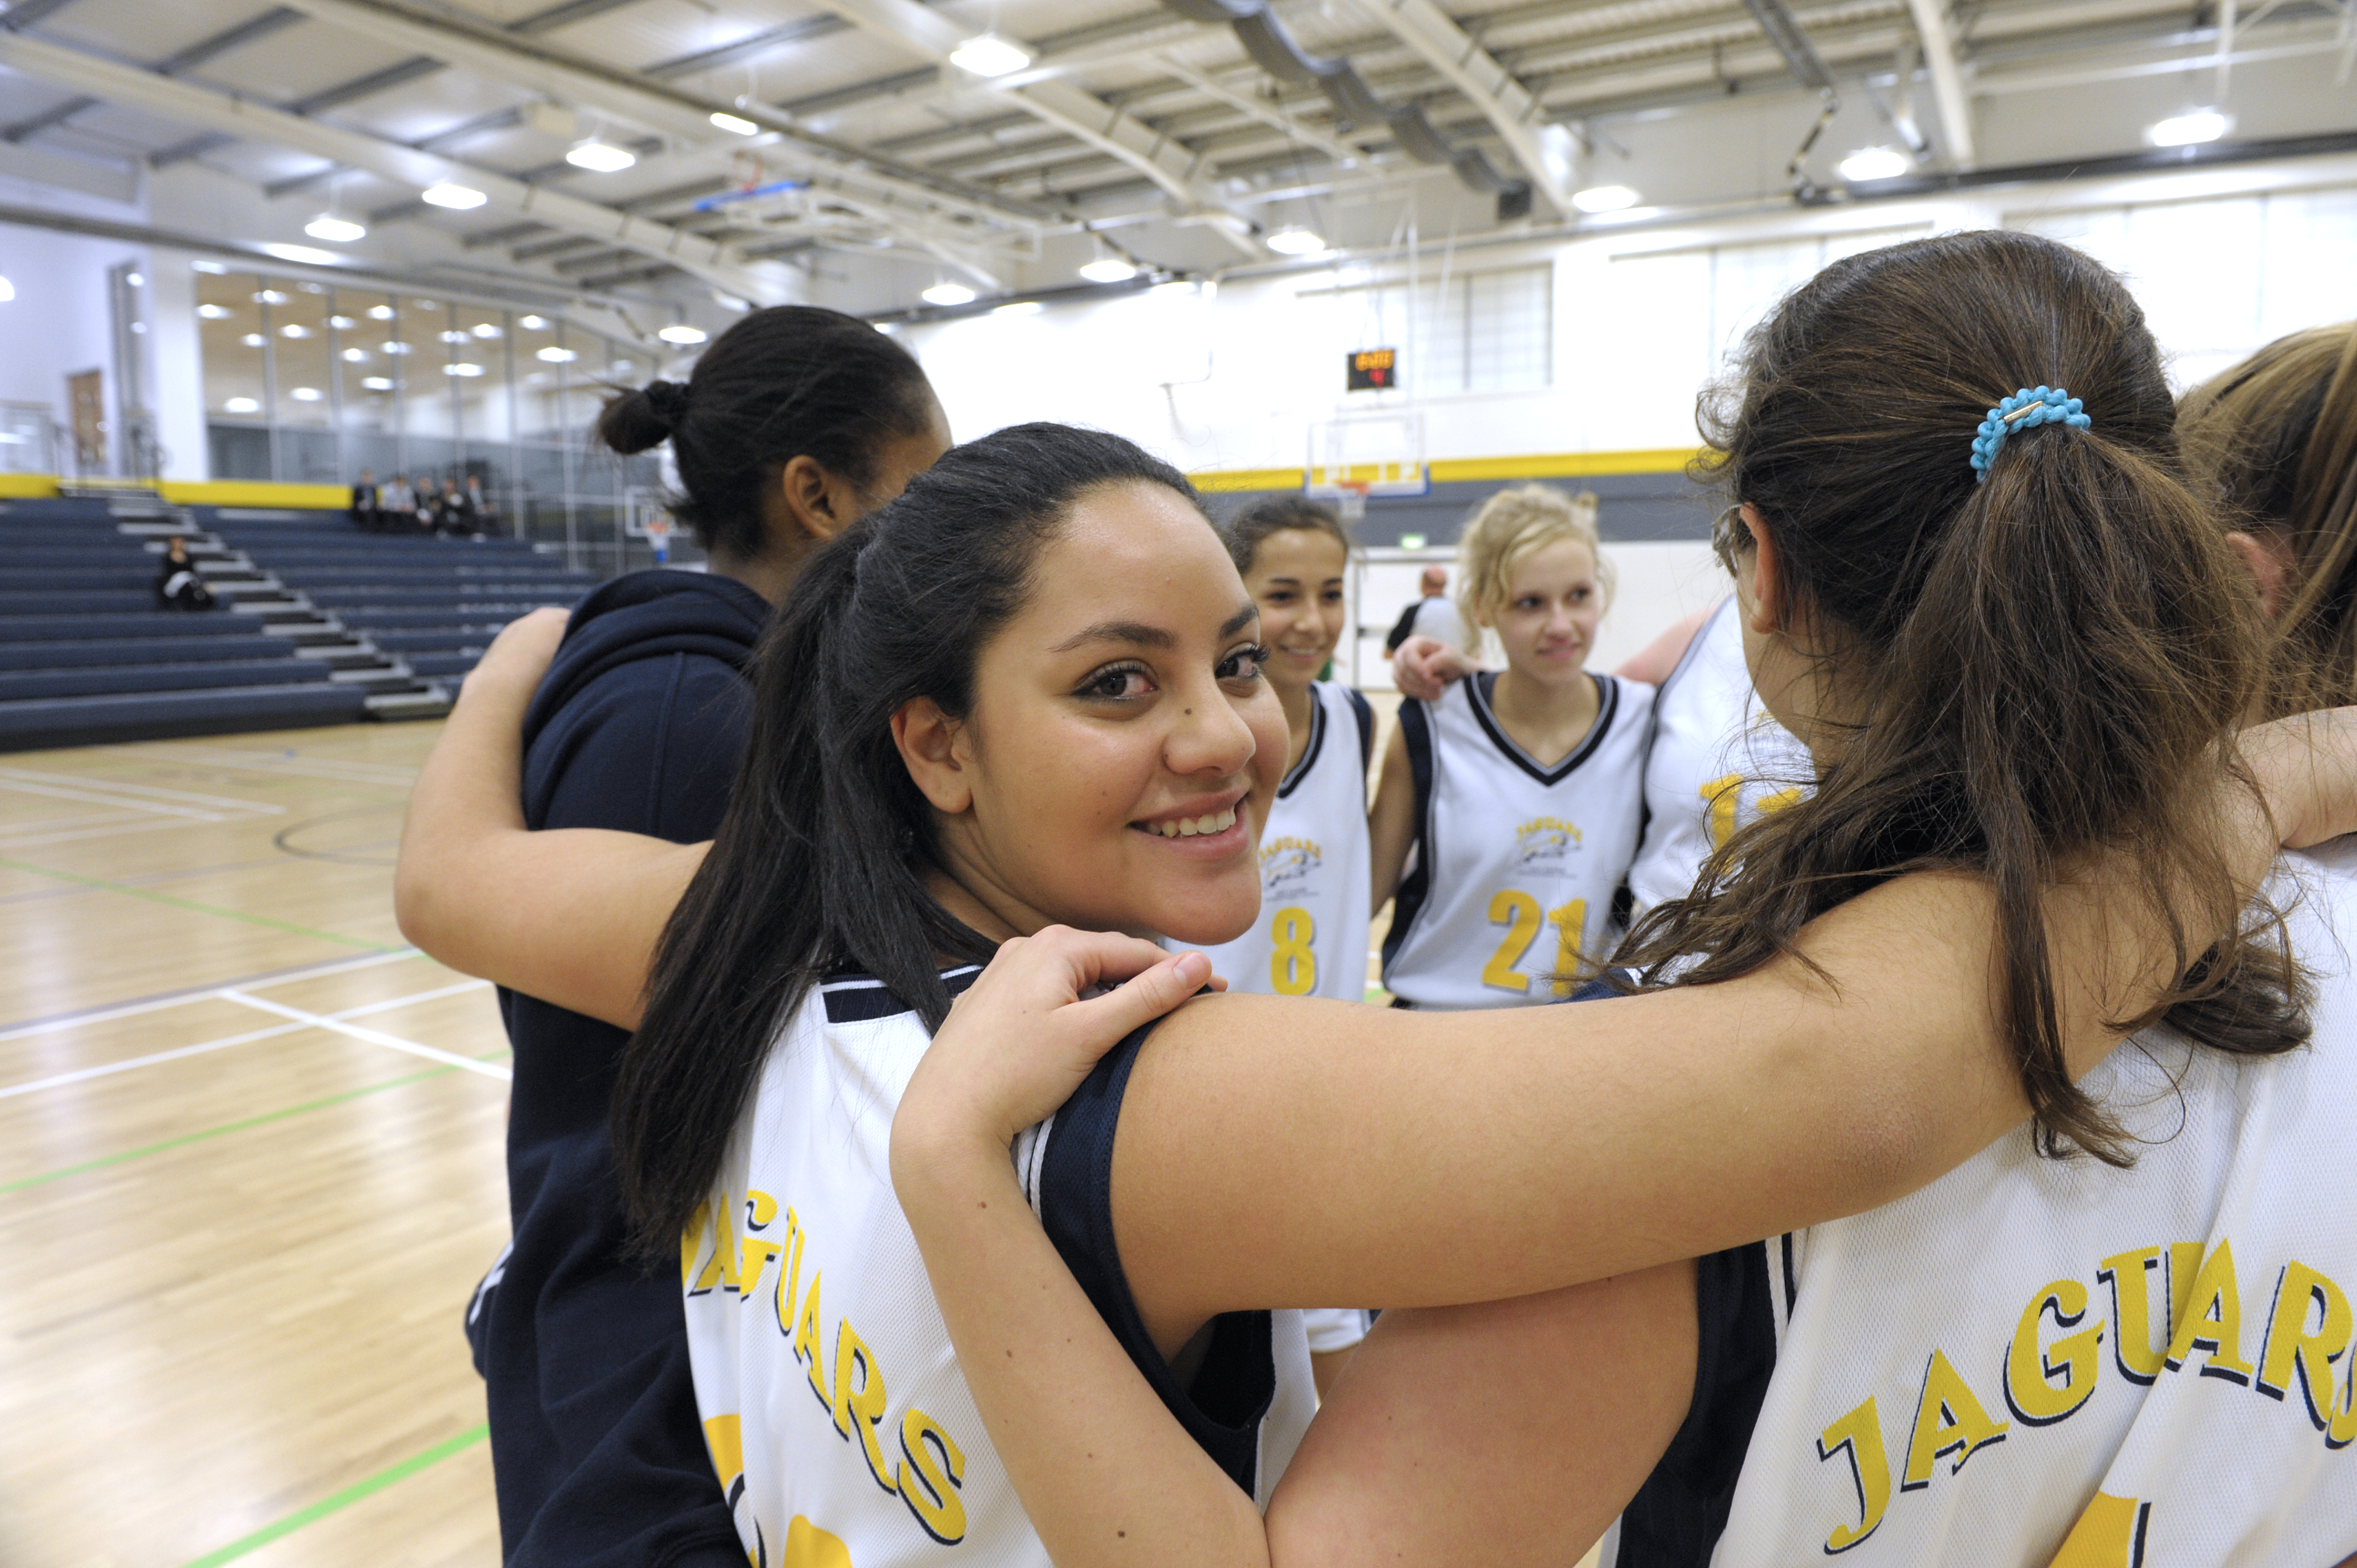 ACS Egham Girls Basketball team in group huddle